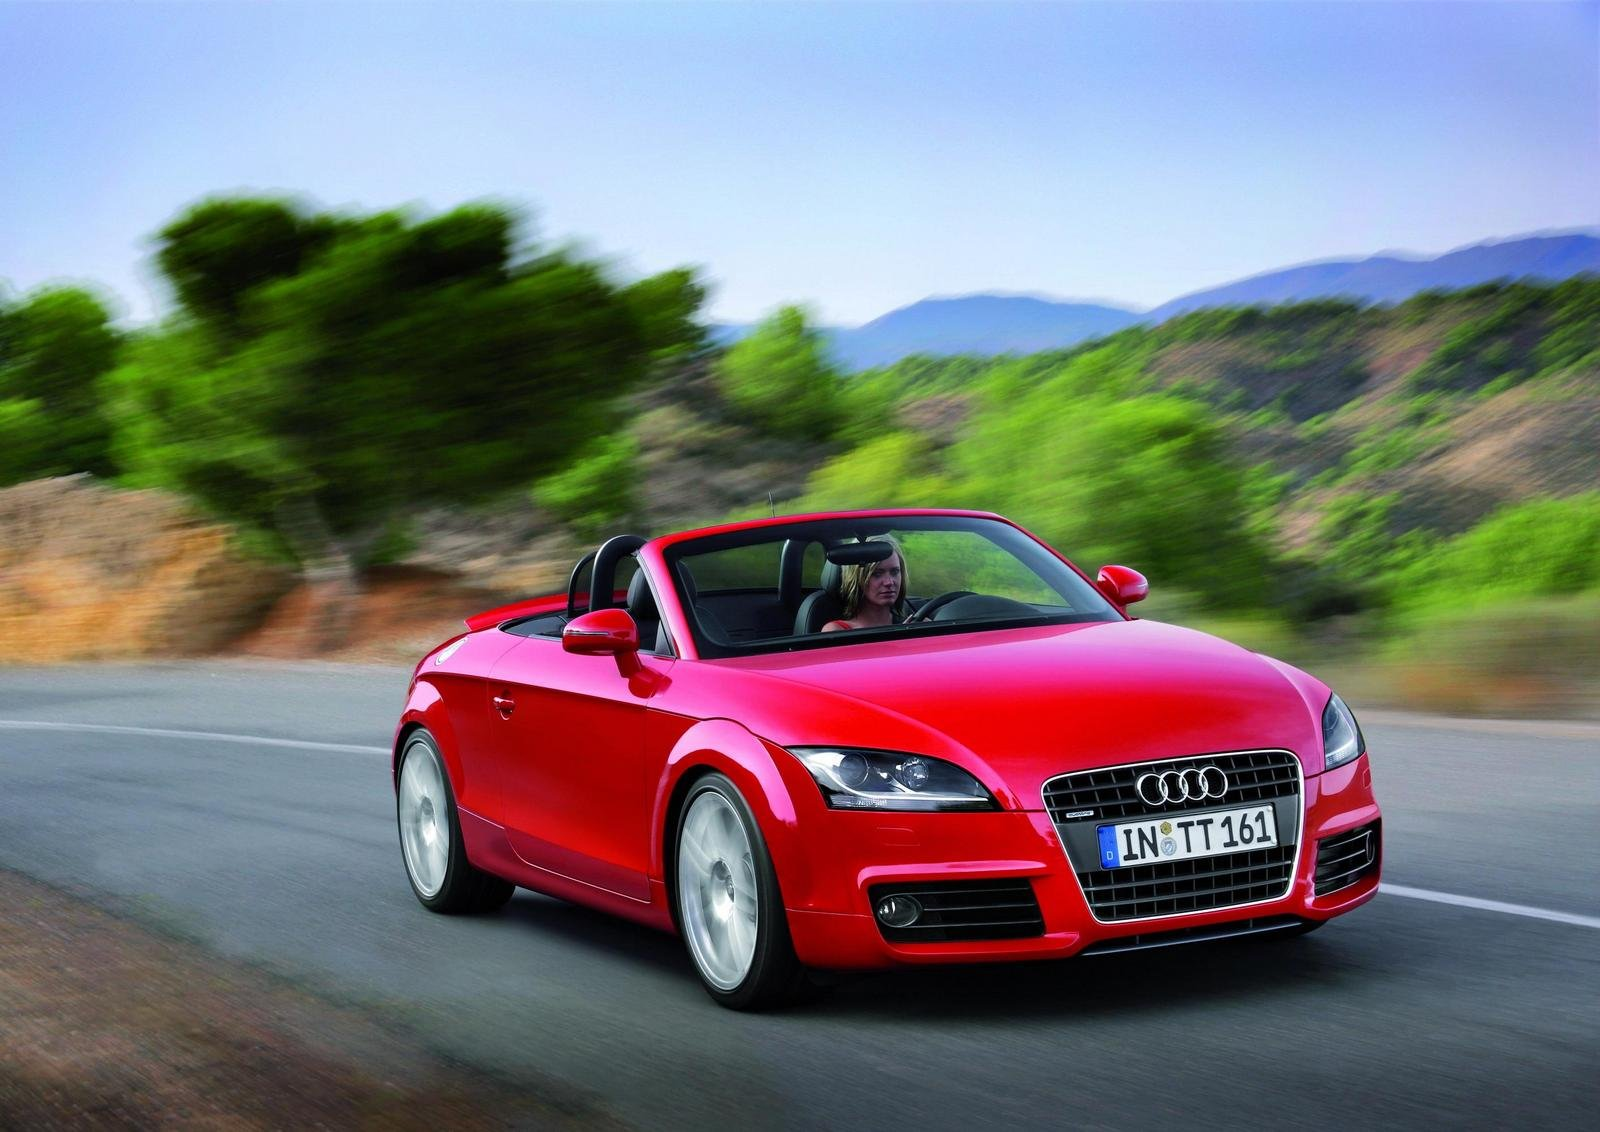 2008 audi tt tdi review gallery top speed. Black Bedroom Furniture Sets. Home Design Ideas